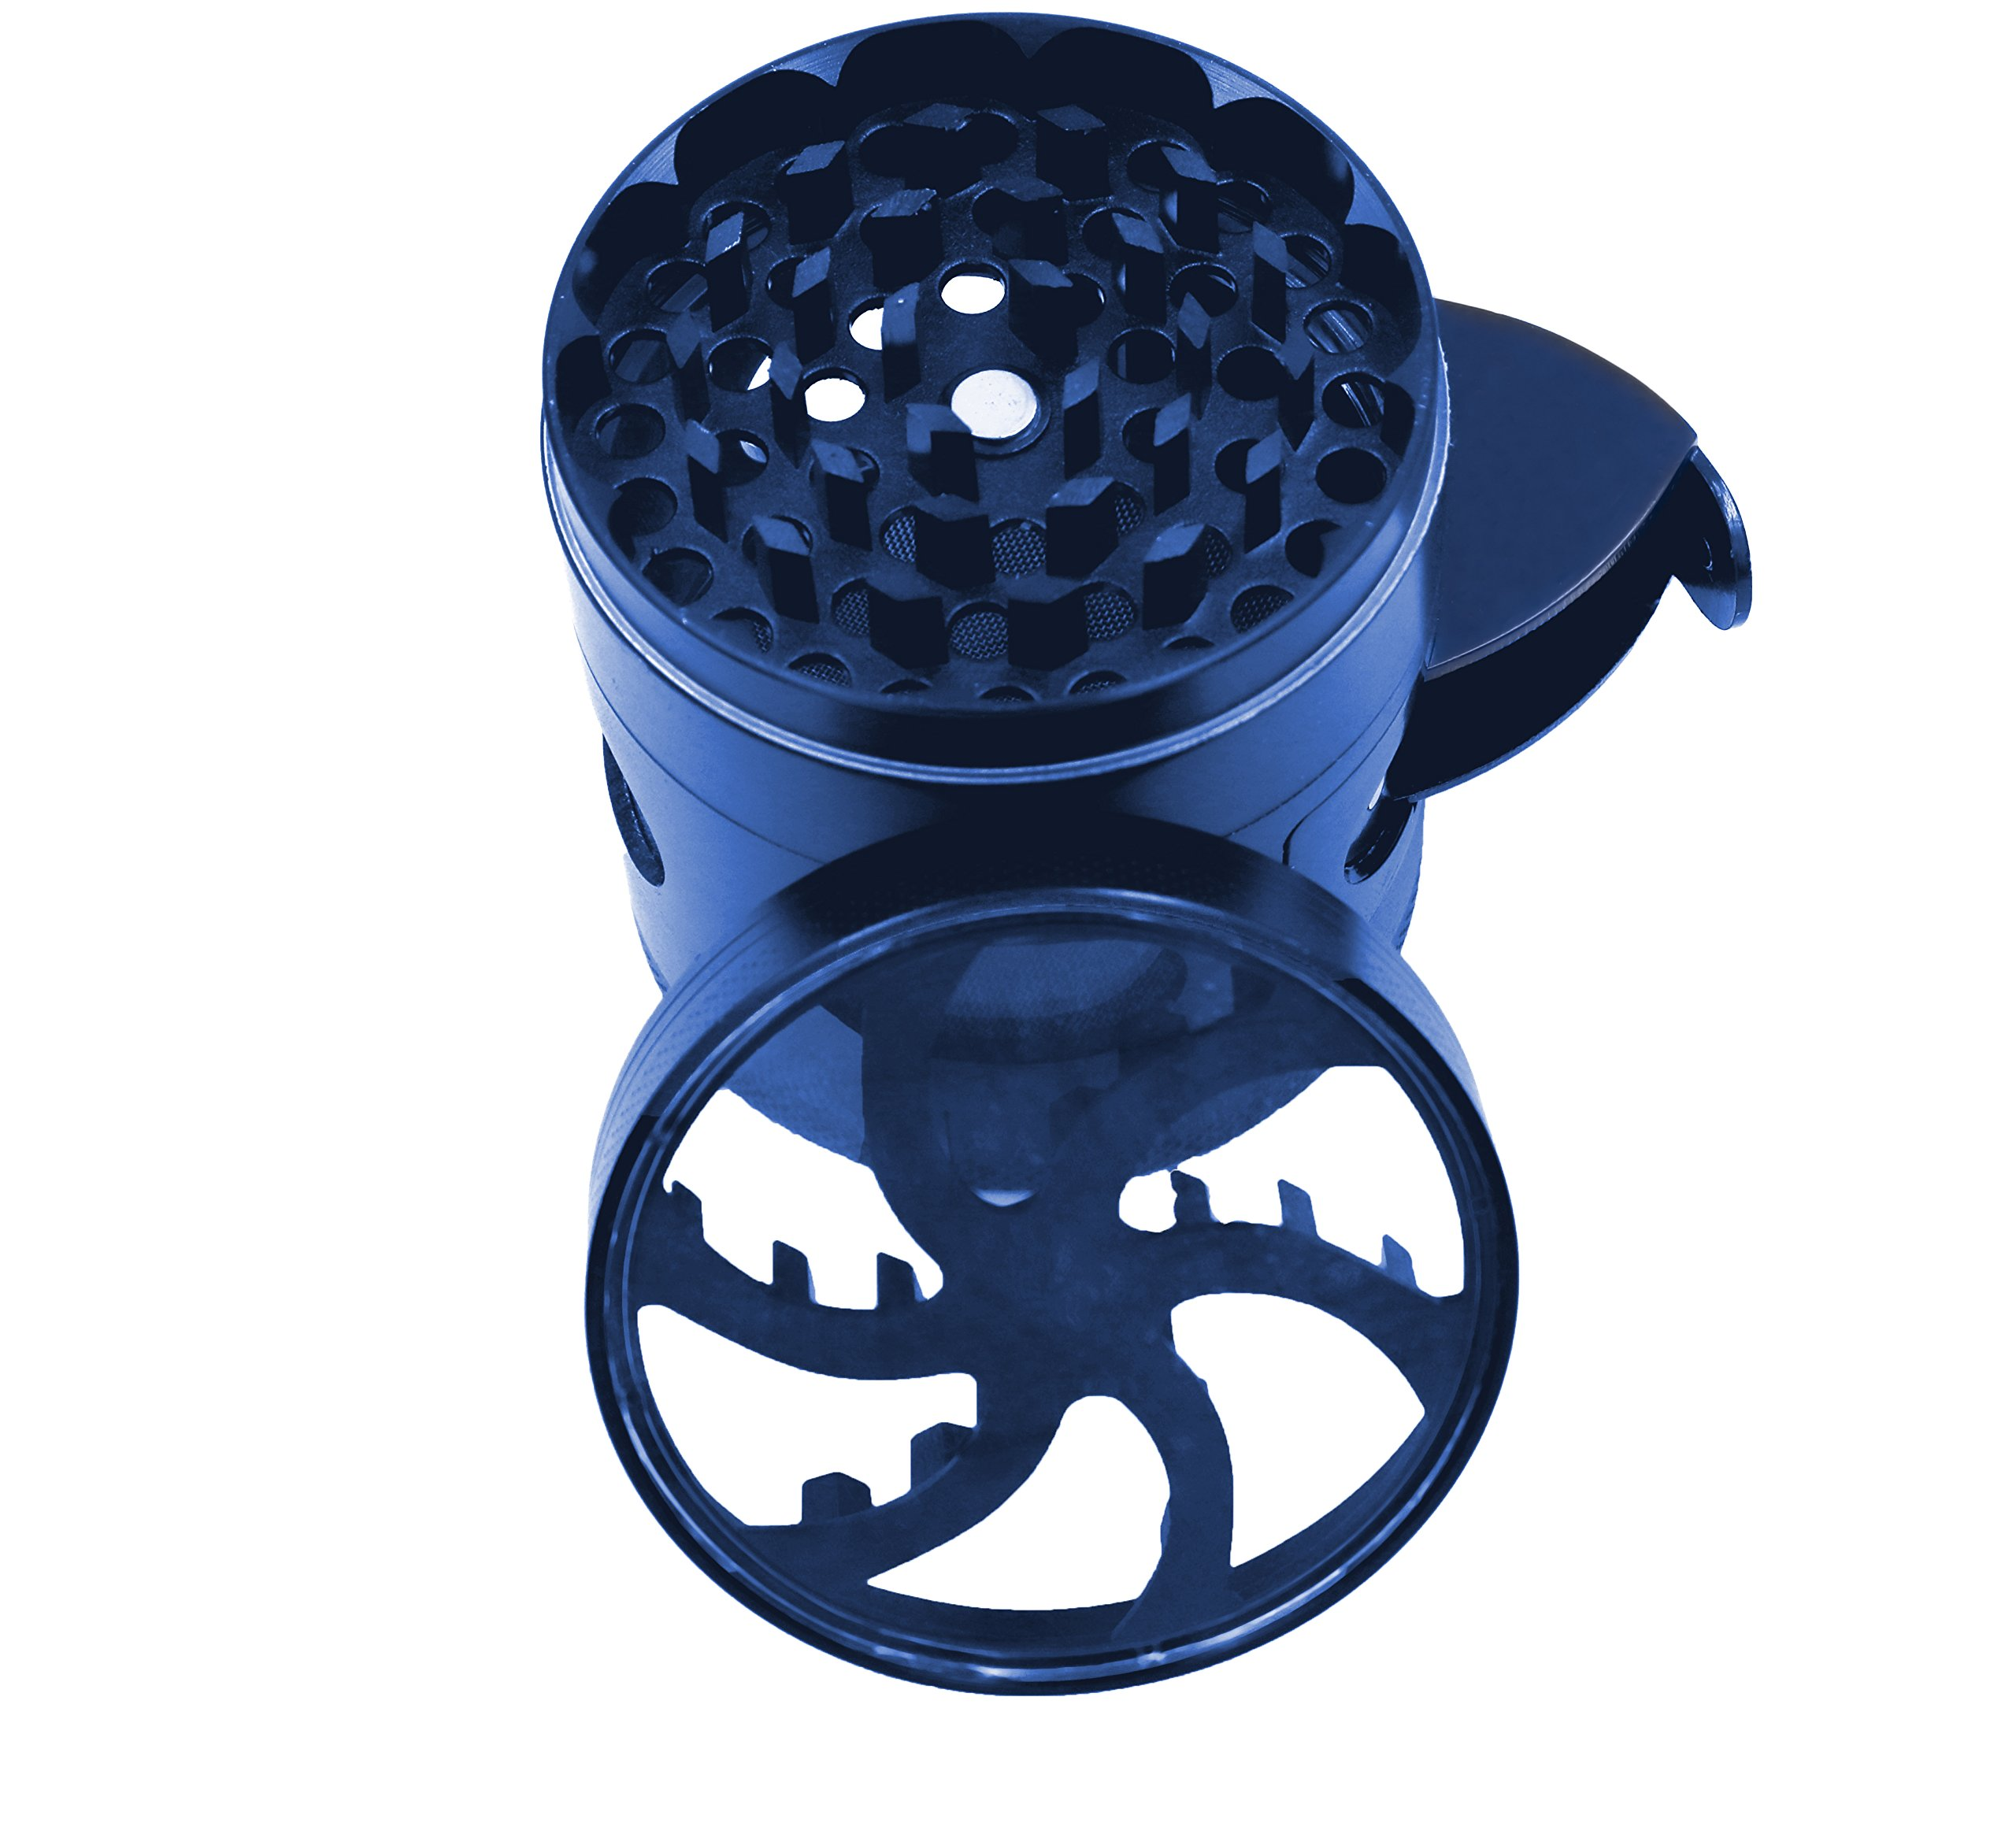 AIMAKE New Design Herb Weed& Spice 4 Piece Large 2.5 Inches Flash Windows Mills Grinder with Pollen Catcher(Blue) by aiMaKE (Image #4)